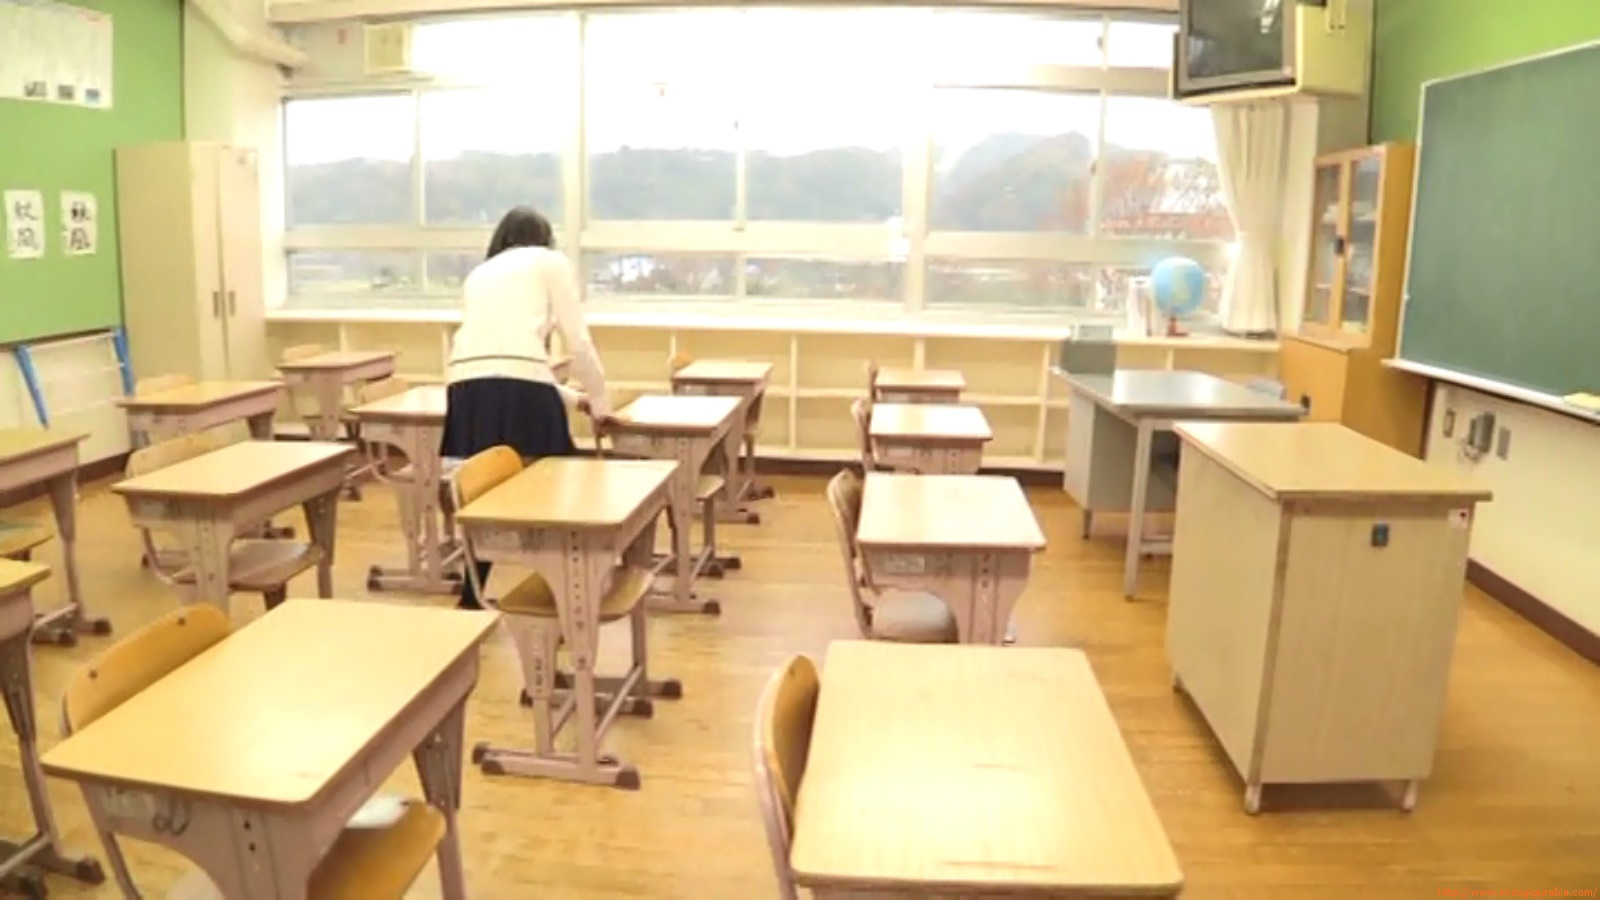 Two-person classroom034